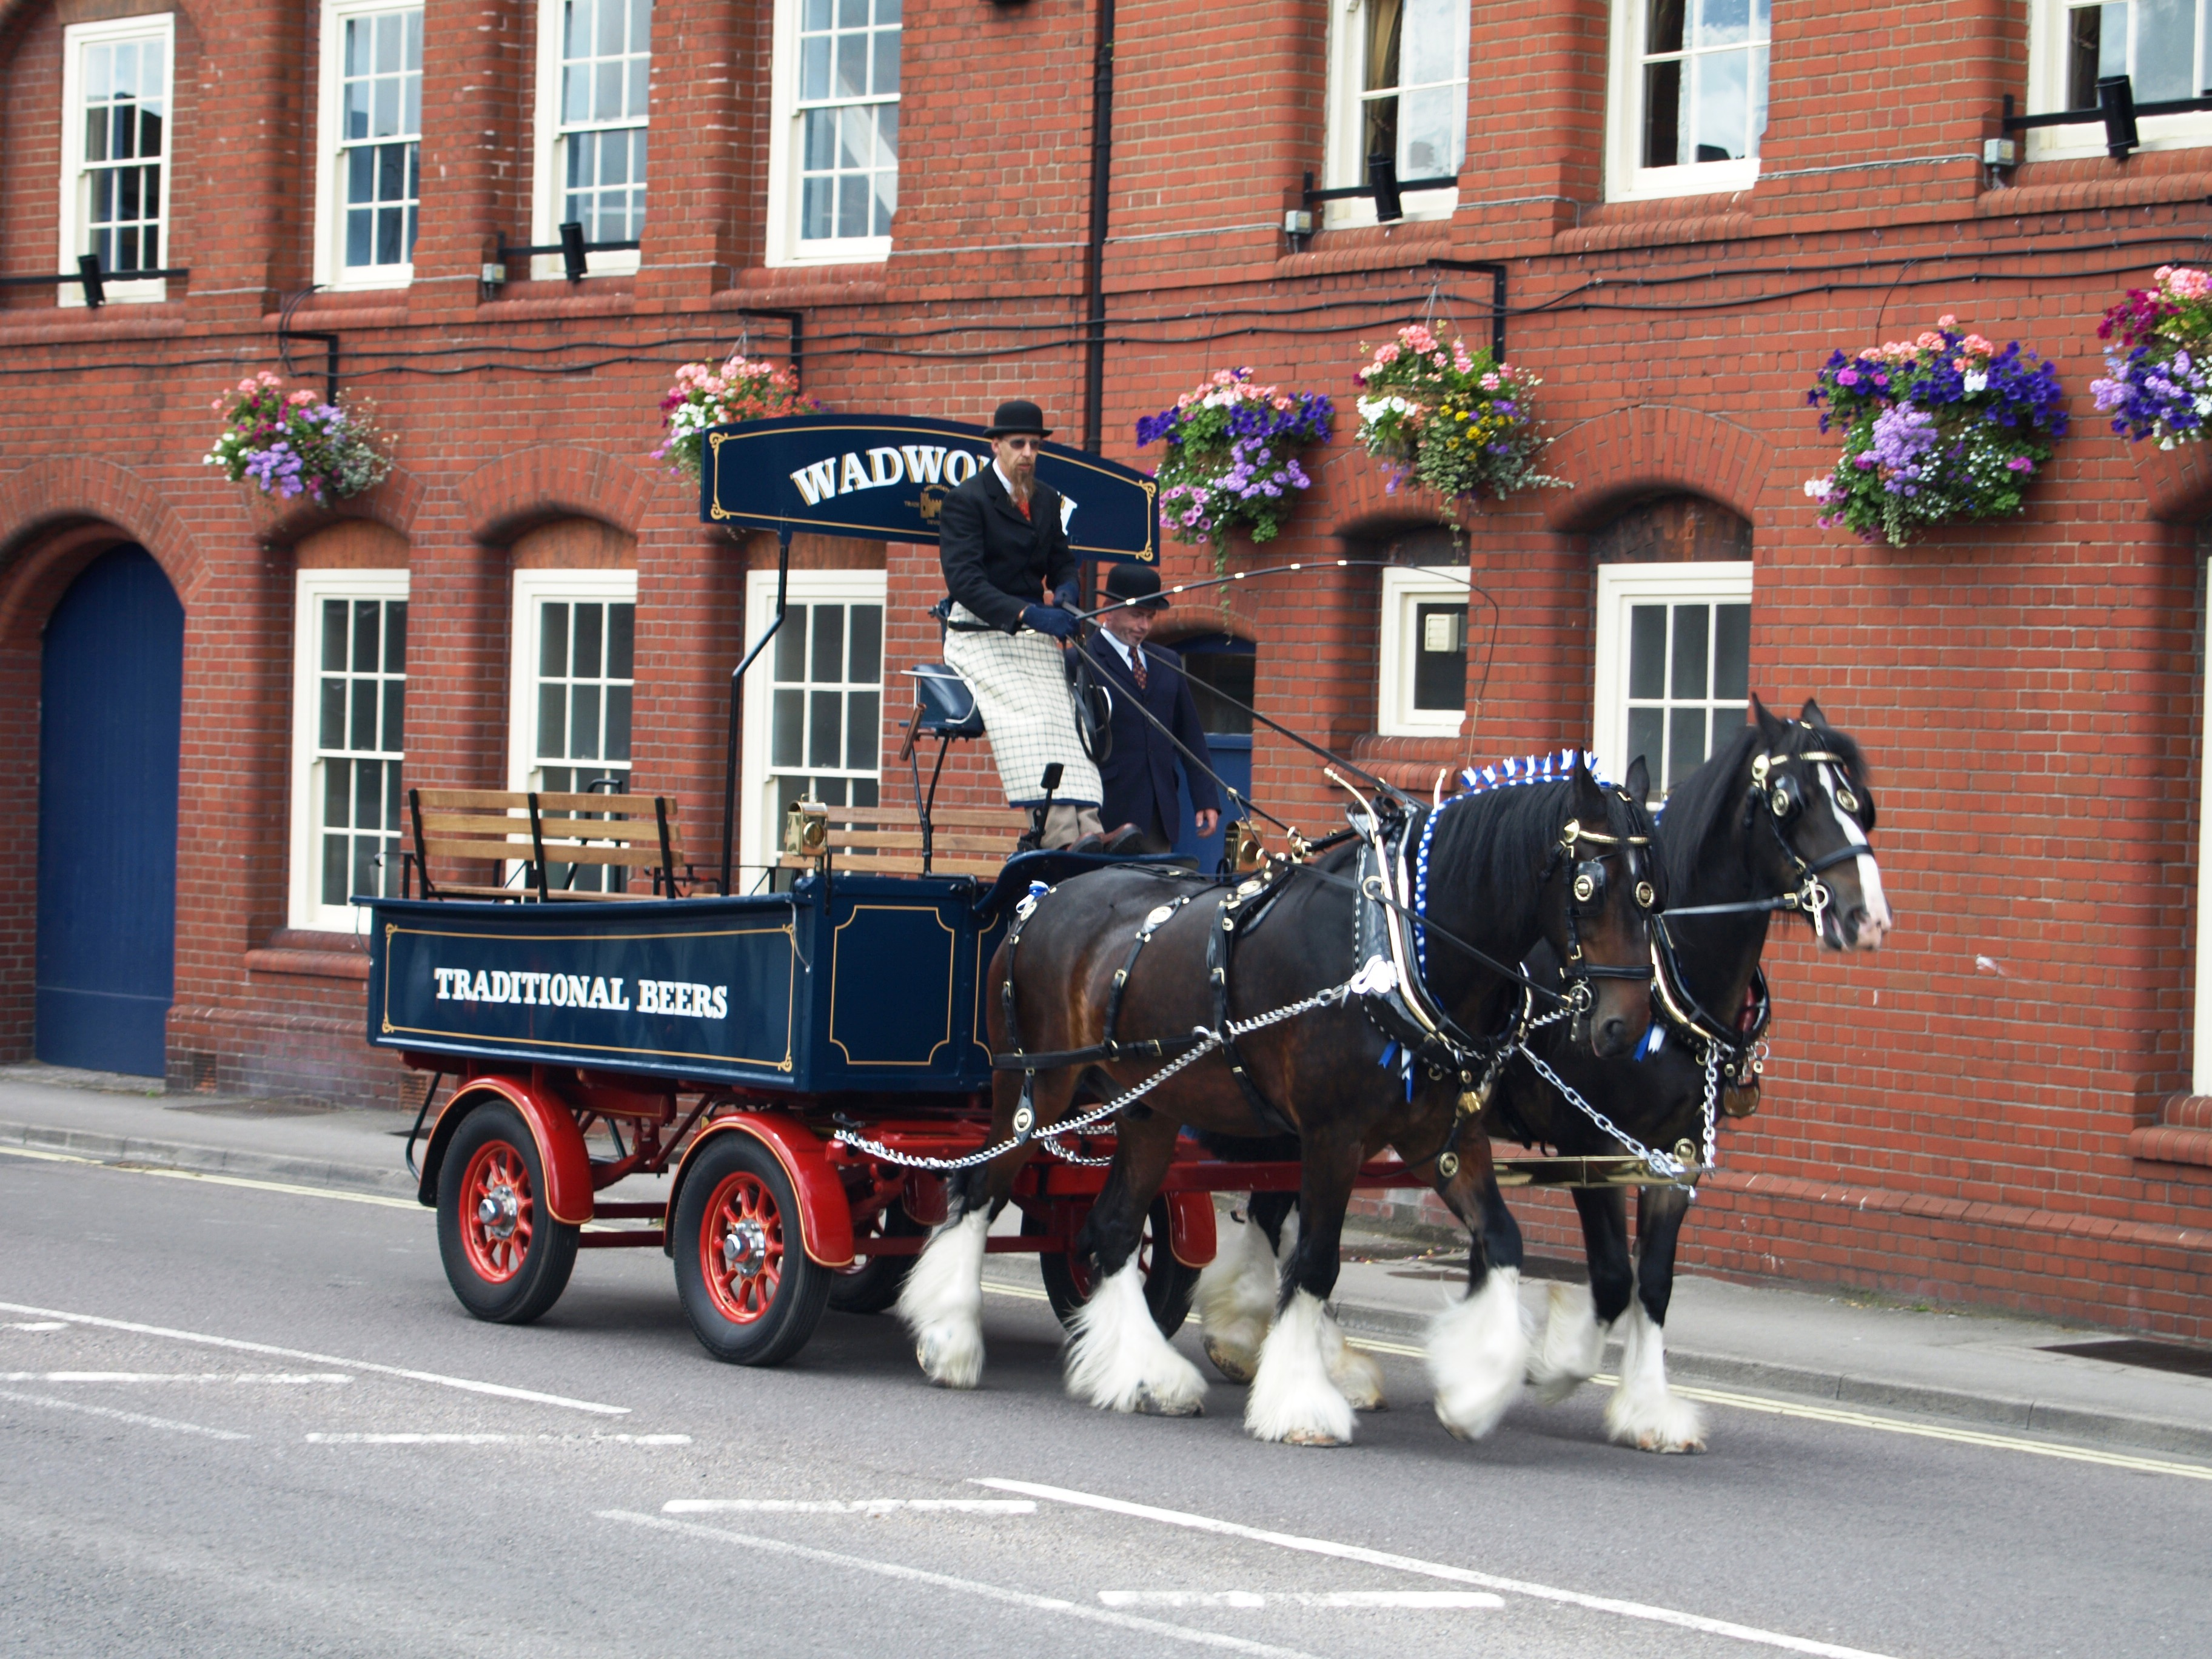 Drawn cart heavy horse Horses Wadworth on beer Brewery's